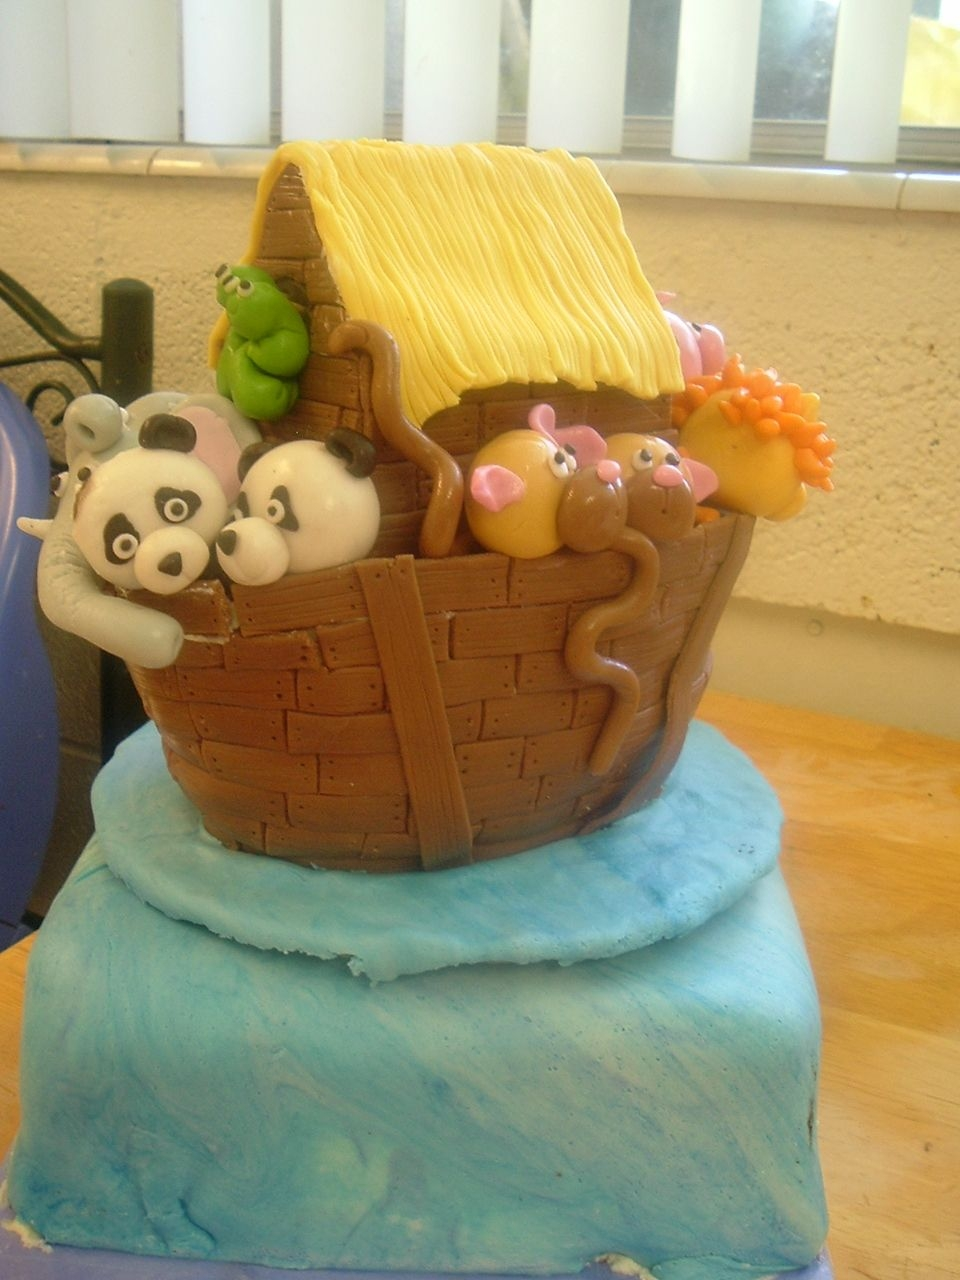 Noah's Ark 1 This is my first attempt at figure modeling and at cake carving. I need to find a denser cake, you can see in some of the pictures that the...